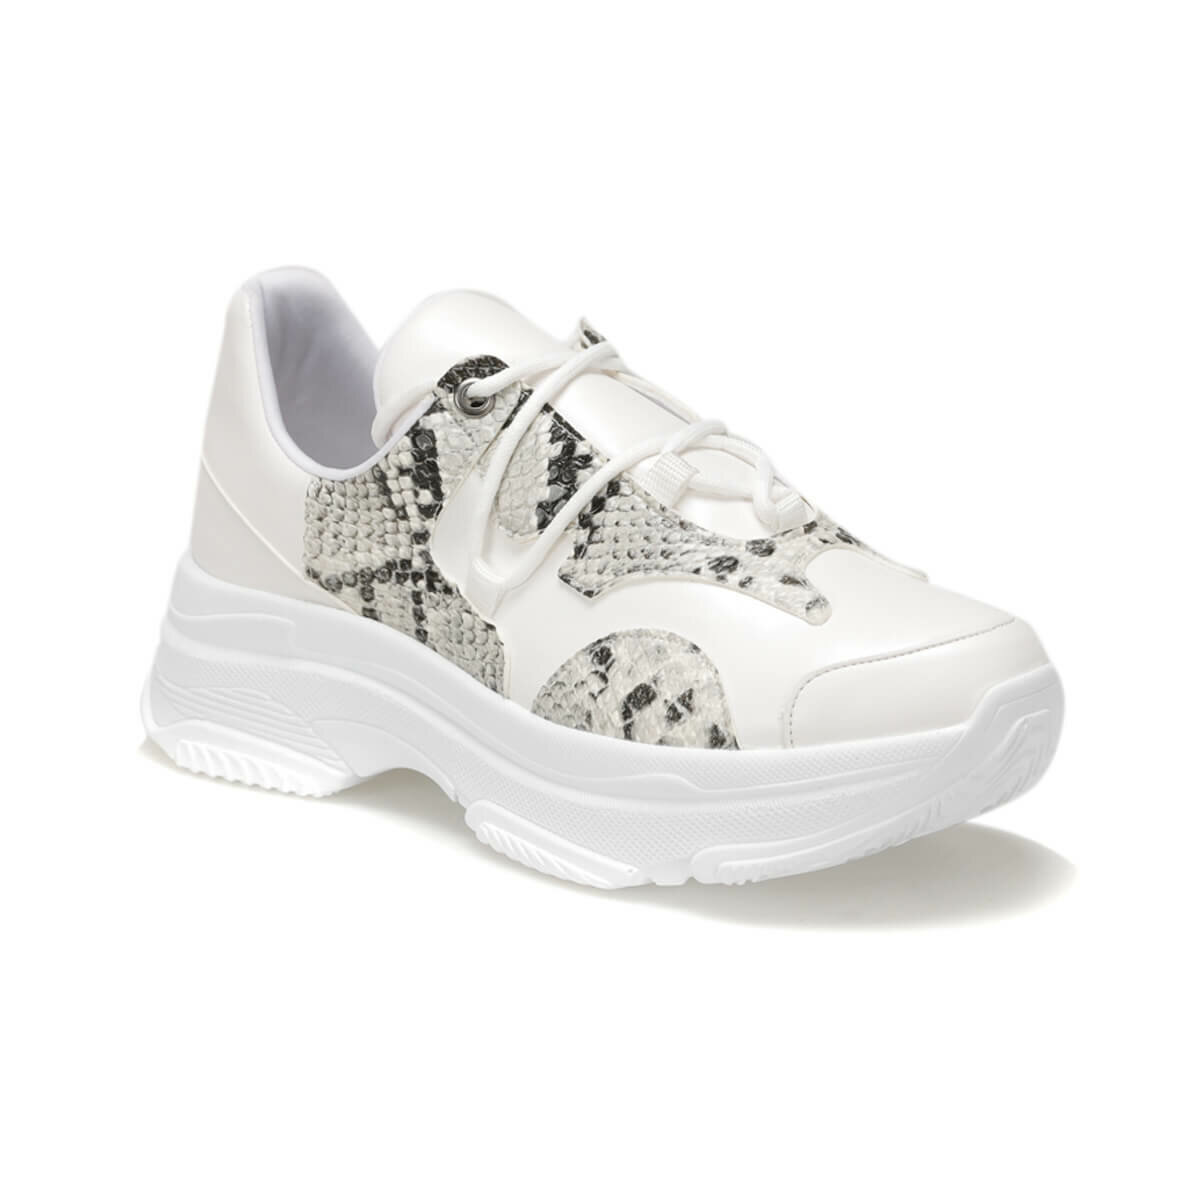 FLO TECNA01Z SKIN White Women 'S Sneaker Shoes BUTIGO